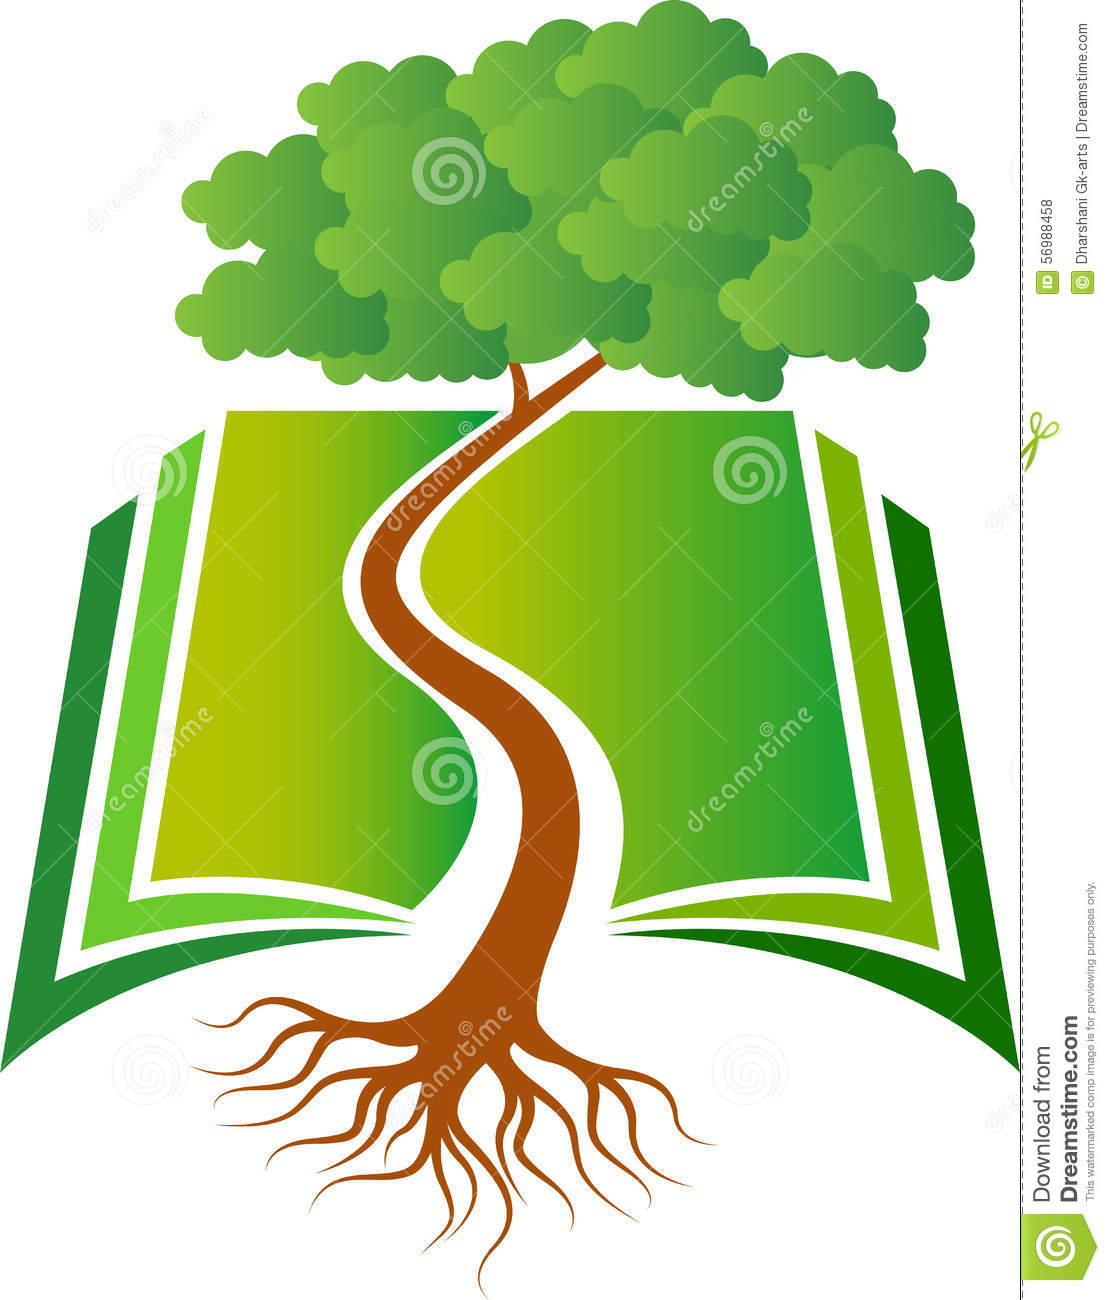 book tree clipart - photo #21